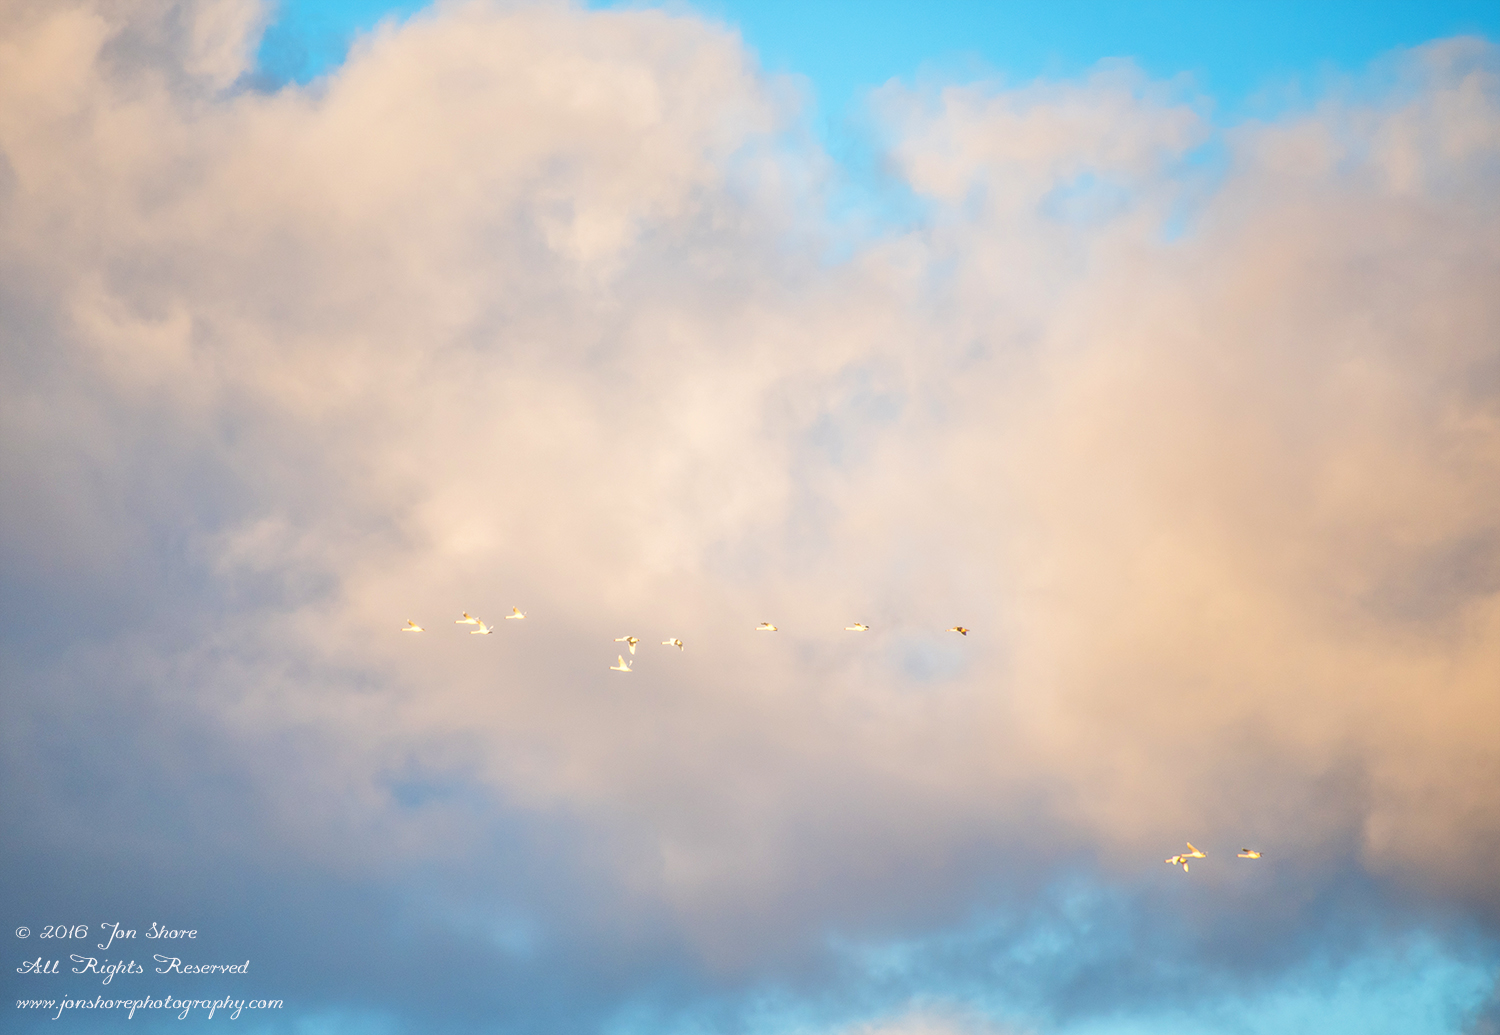 Swans flying in a stormy cloudscape. Nikkor 300mm